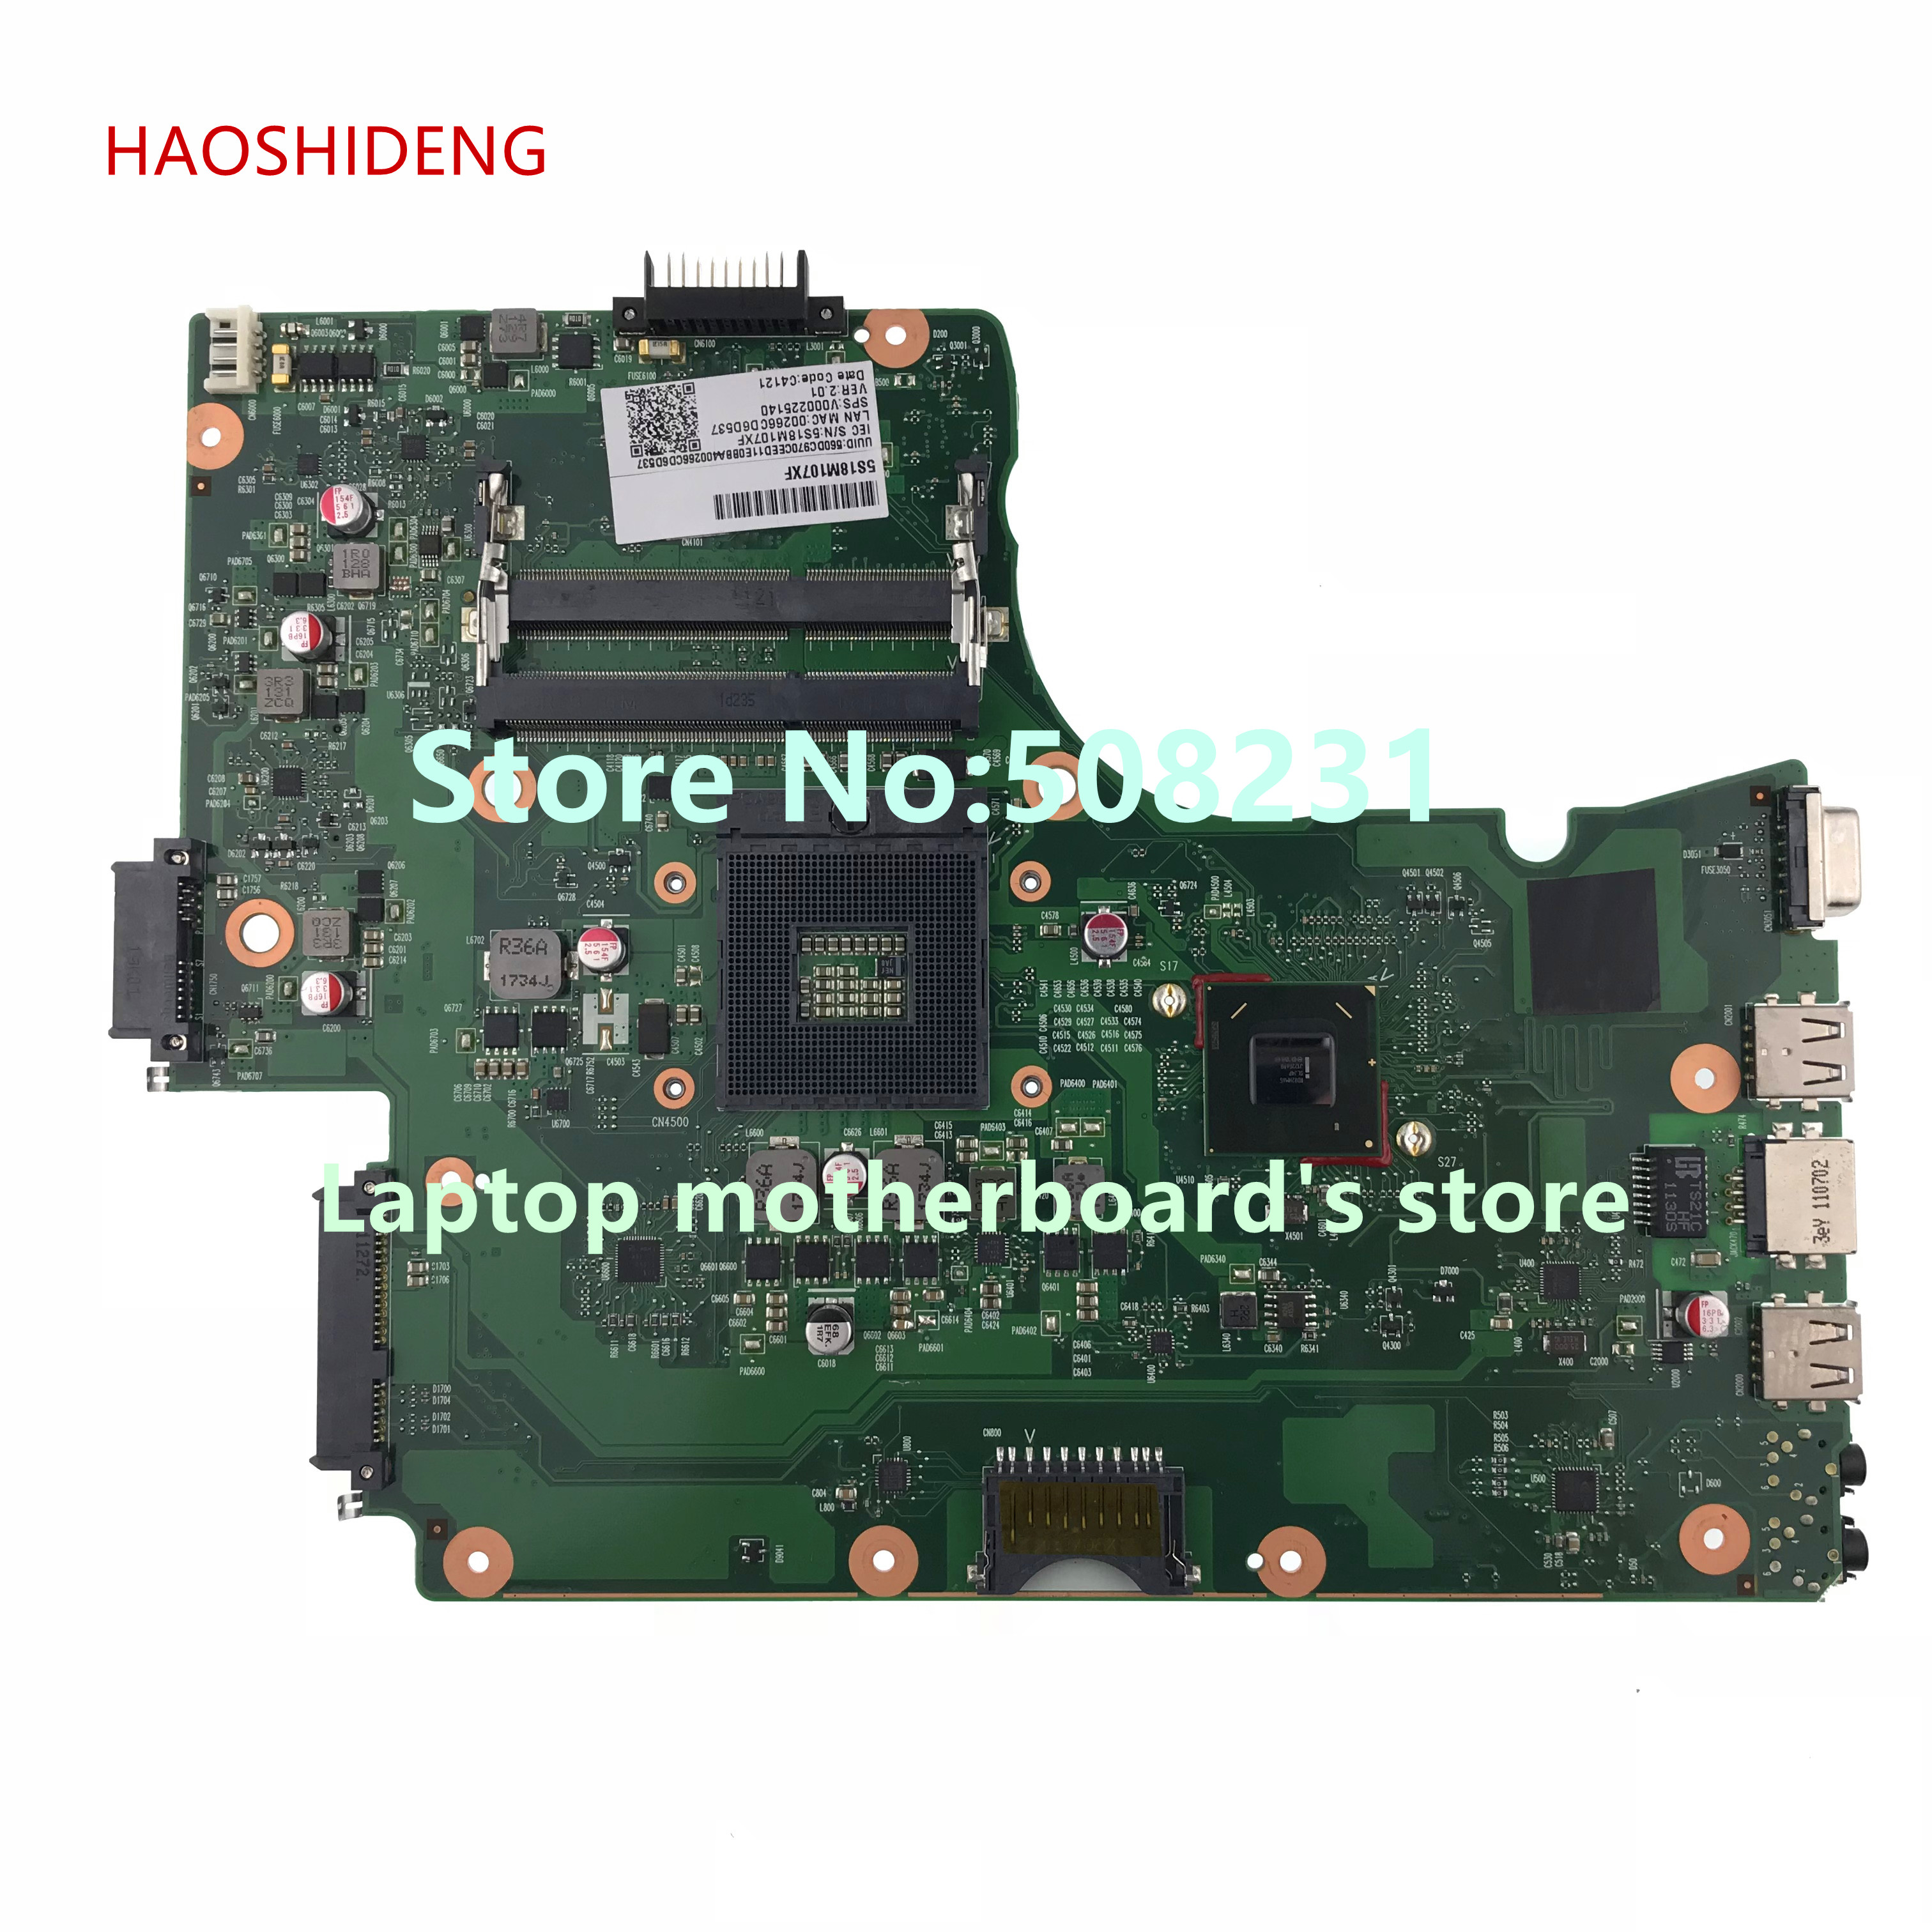 HAOSHIDENG V000225140 mainboard For Toshiba Satellite C650 C655 laptop motherboard MN10R-6050A2423501-MB-A02 for toshiba satellite c655 s5128